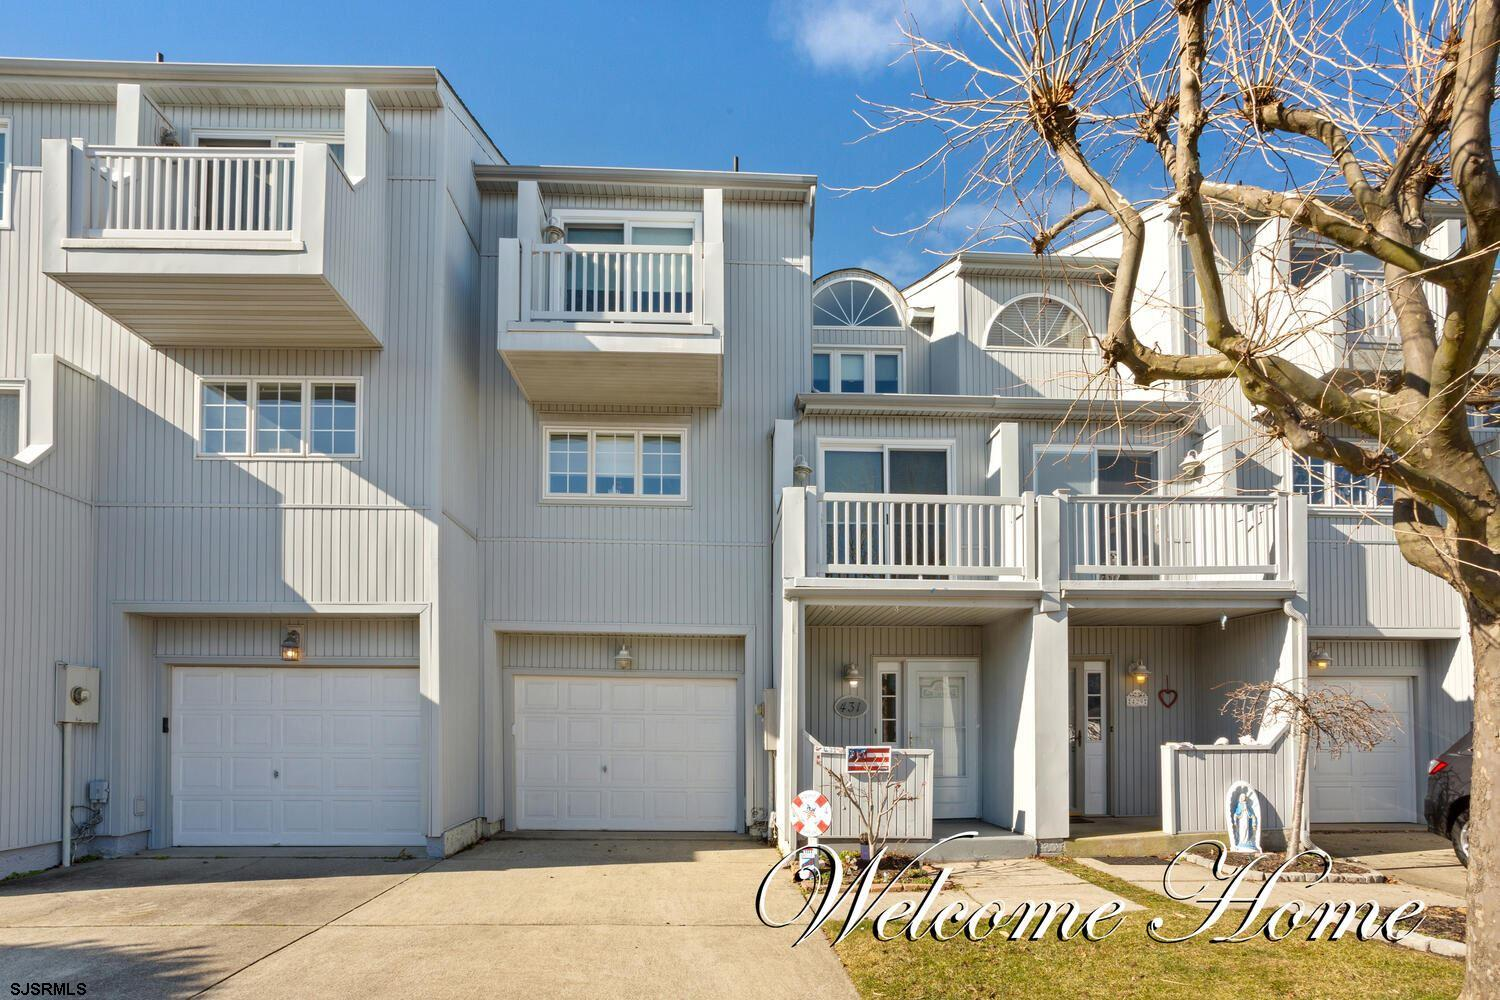 New on Market! Rare Moorings fee simple townhouse with 3 bedrooms/ 2.5 baths. This town home feature